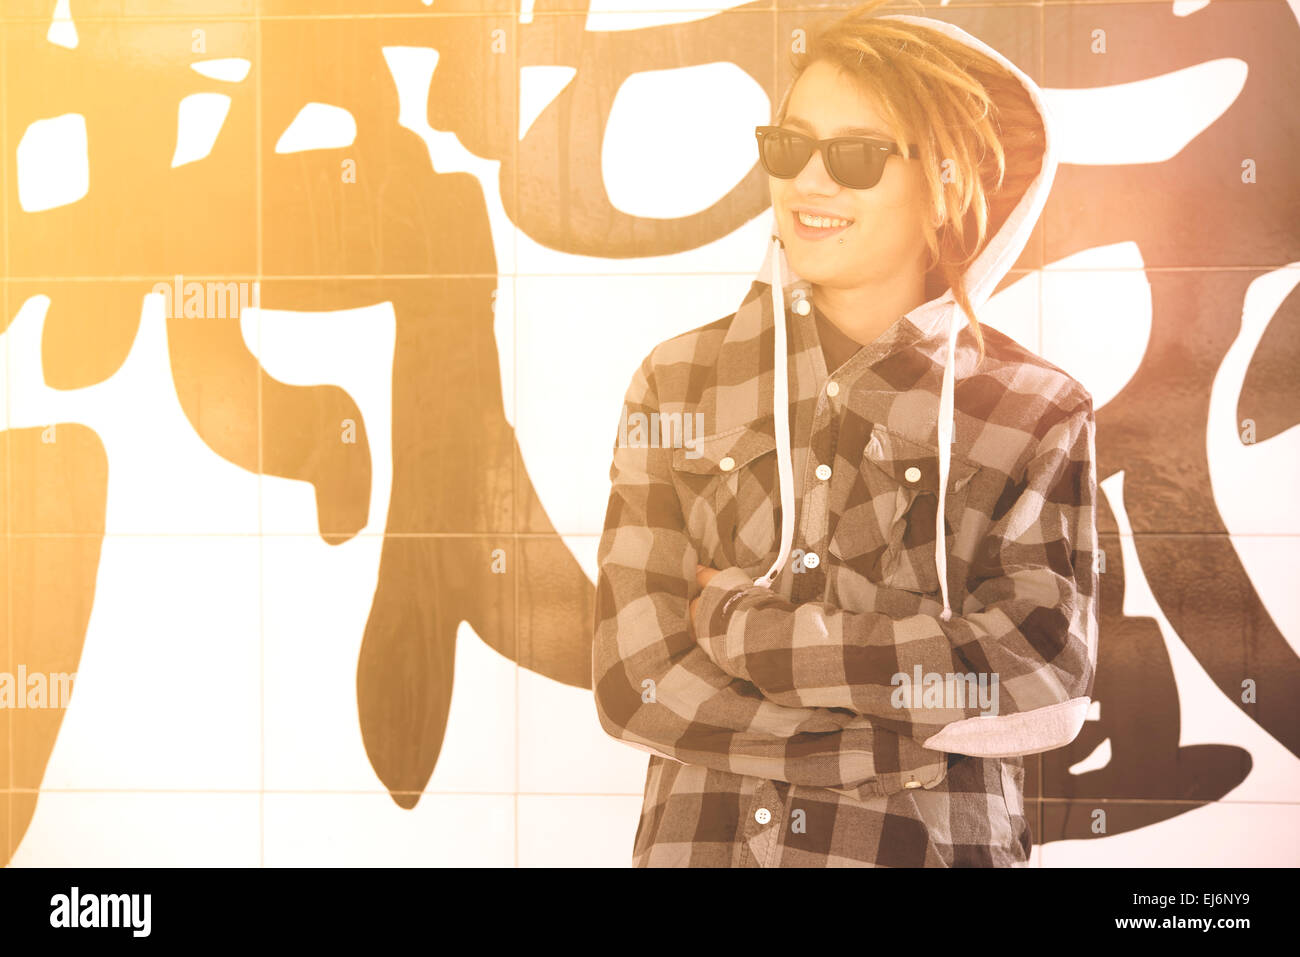 portrait of young guy  with rasta hair in a lifestyle concept warm filter applied - Stock Image